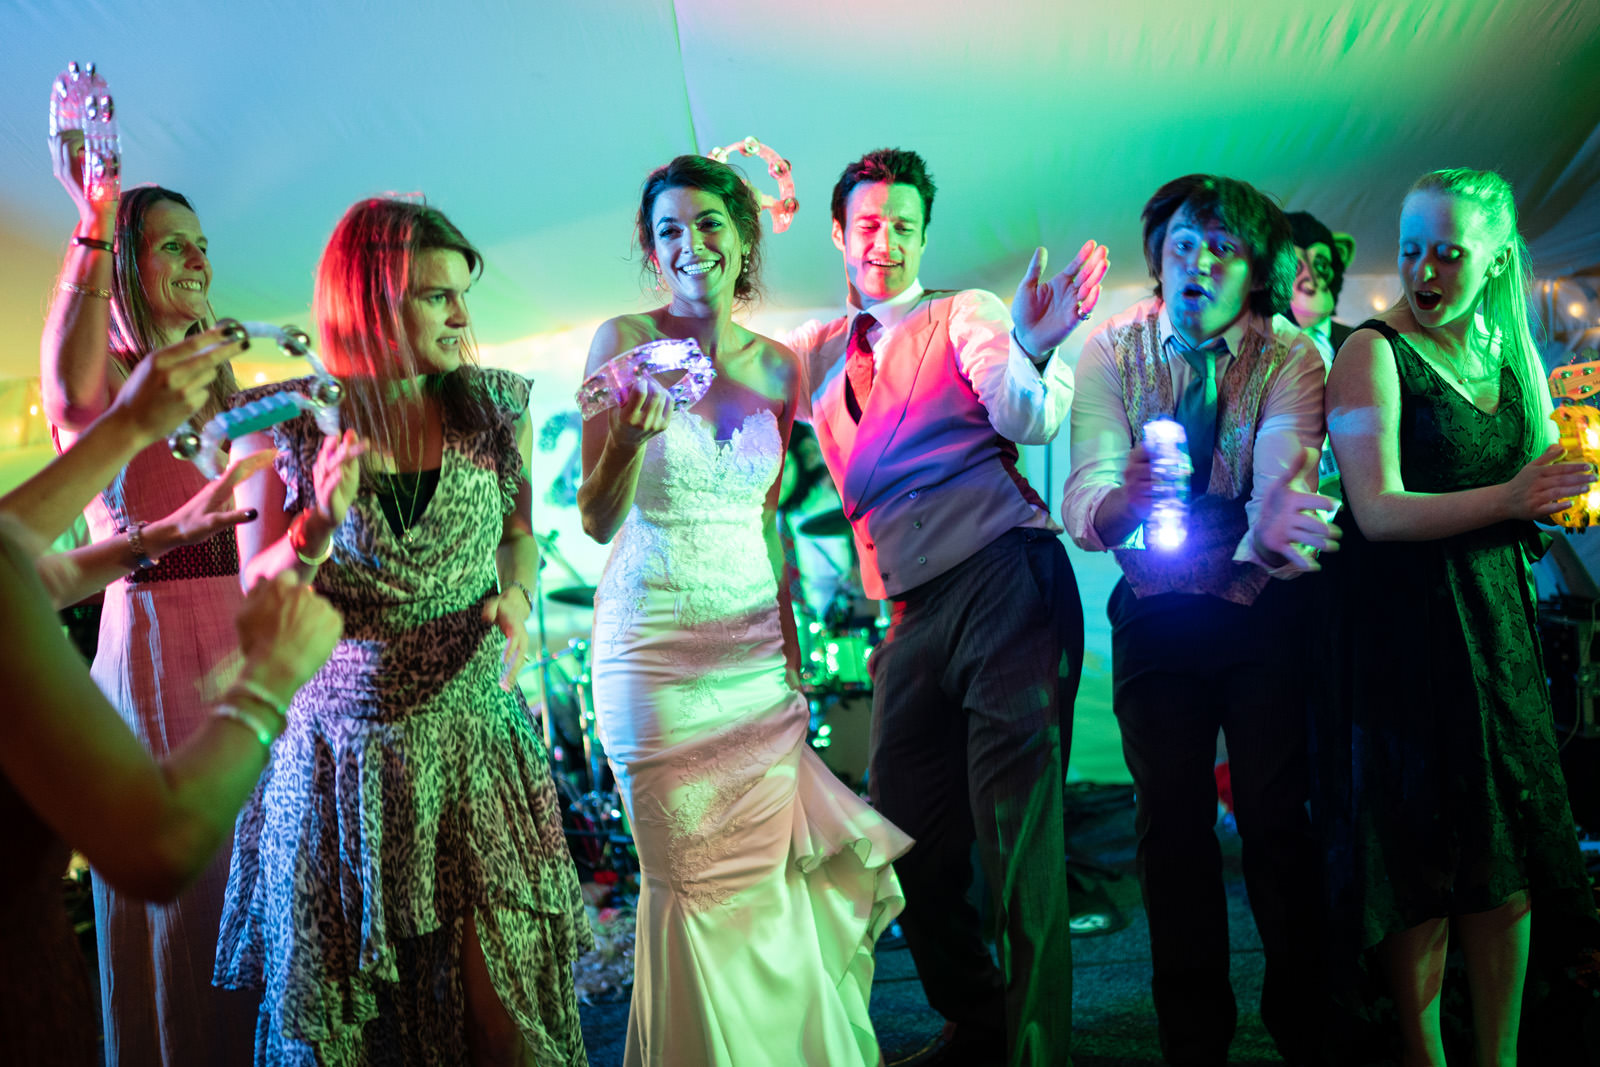 Newlyweds take over their marquee stage with tambourines